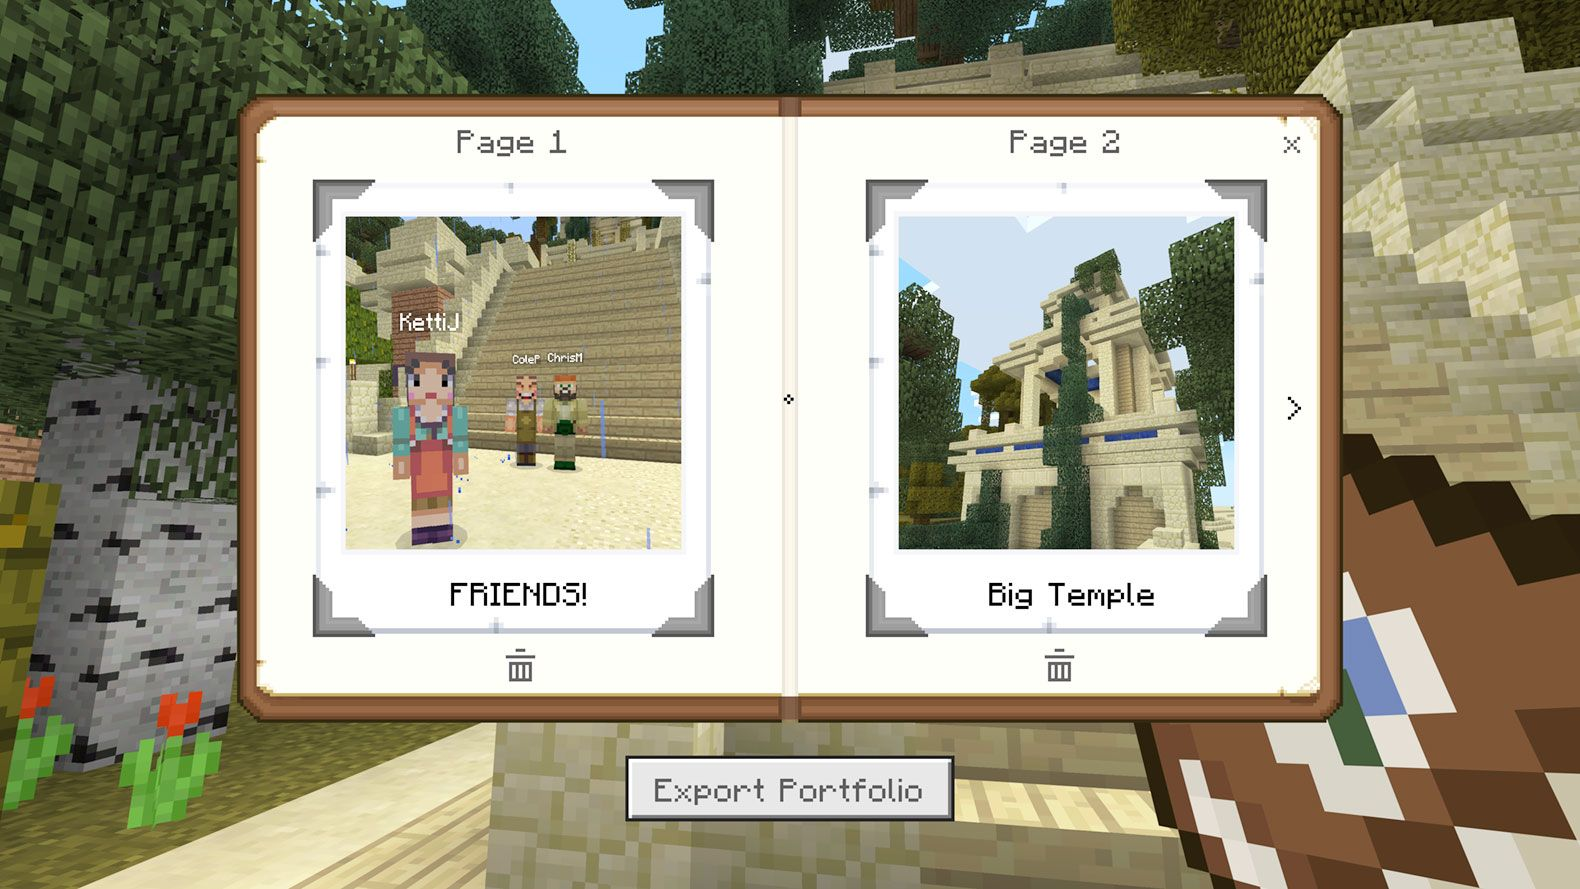 Students can save images connected to course content in Minecraft.